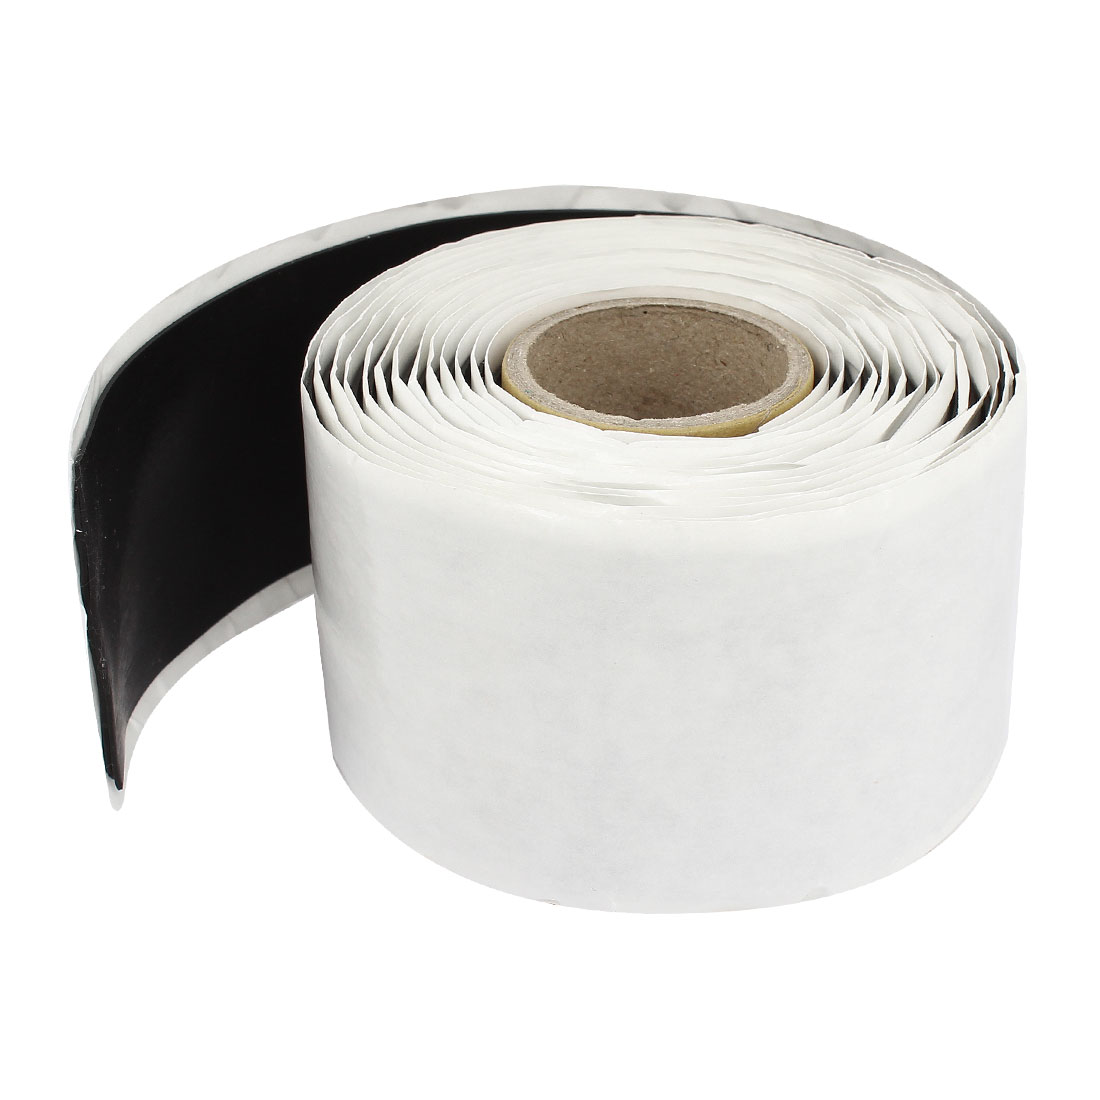 1.8mmx50mm 3 Meters PVC Electrical Wire Insulating Tape Roll Black